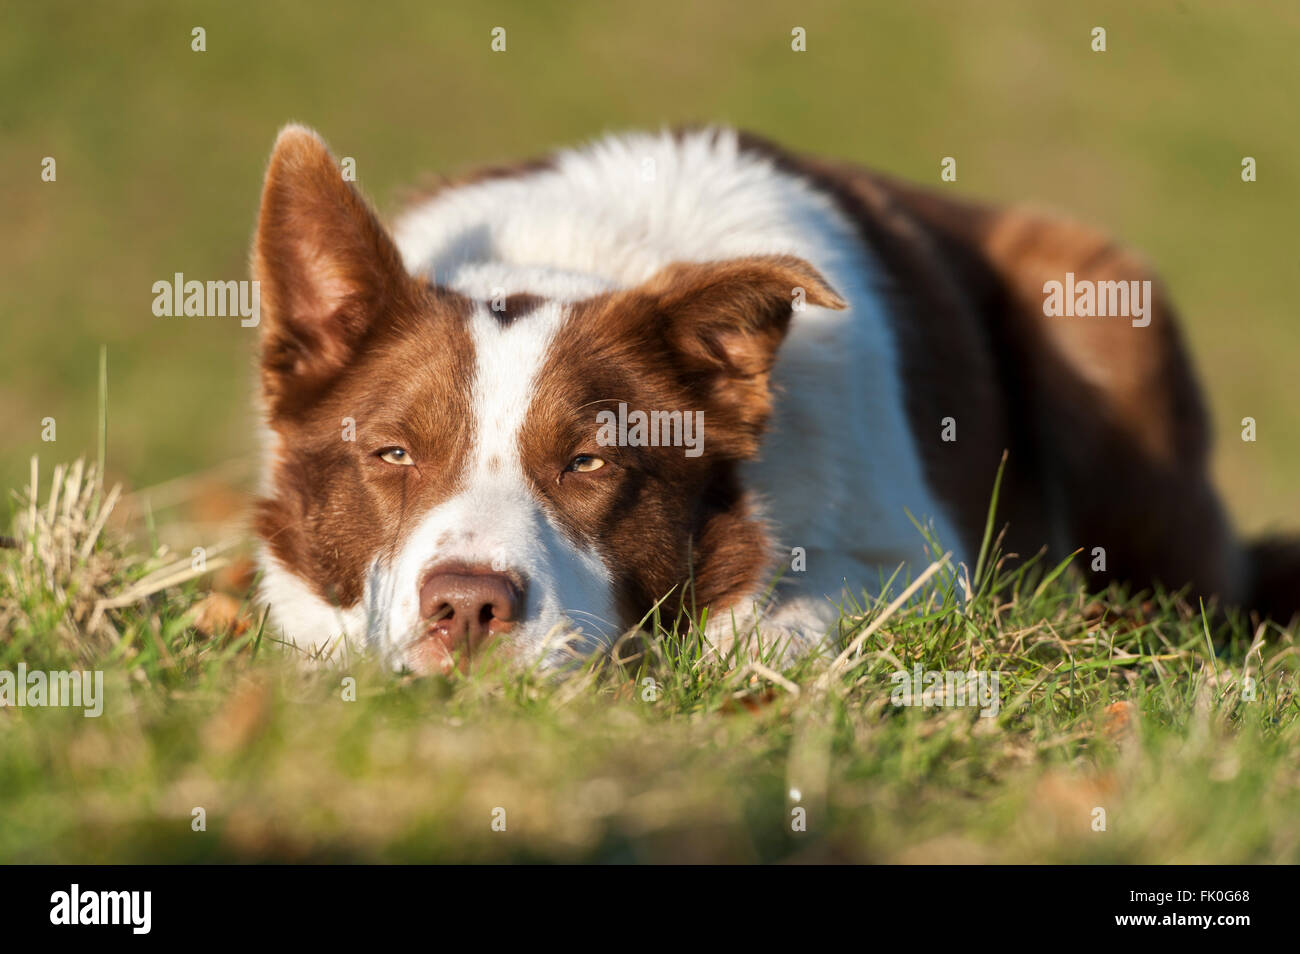 Red and white Border collie sheepdog laid watching sheep. Yorkshire, UK. - Stock Image